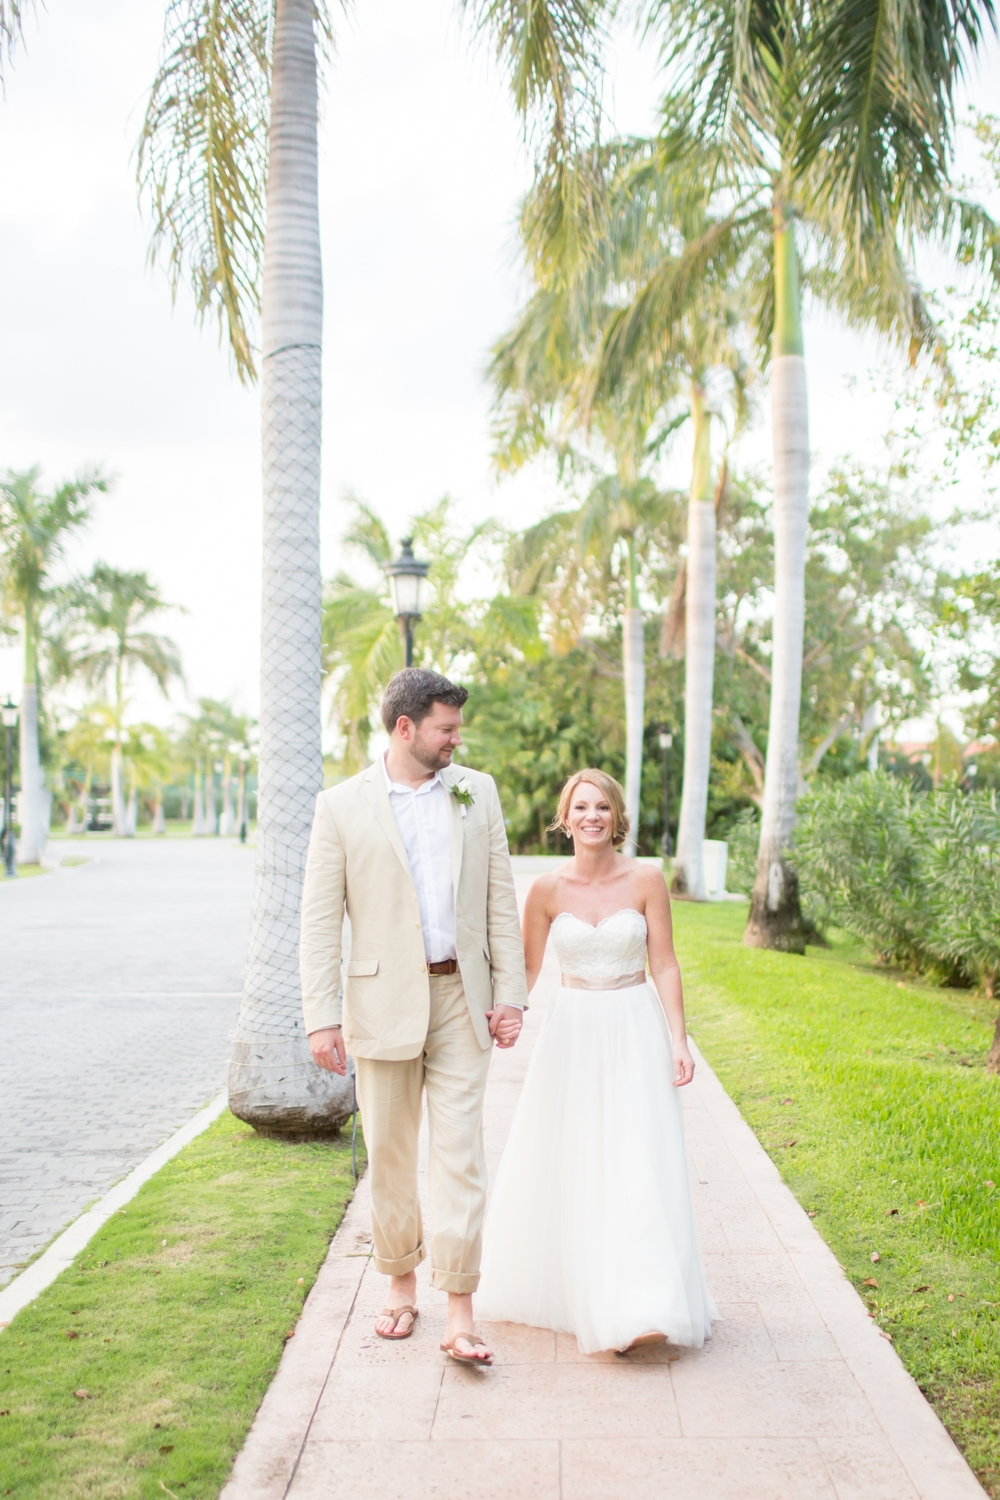 Morosoff Wedding 4-Bride & Groom Portraits-530_anna grace photography destination wedding photographer playa del carmen mexico photo.jpg